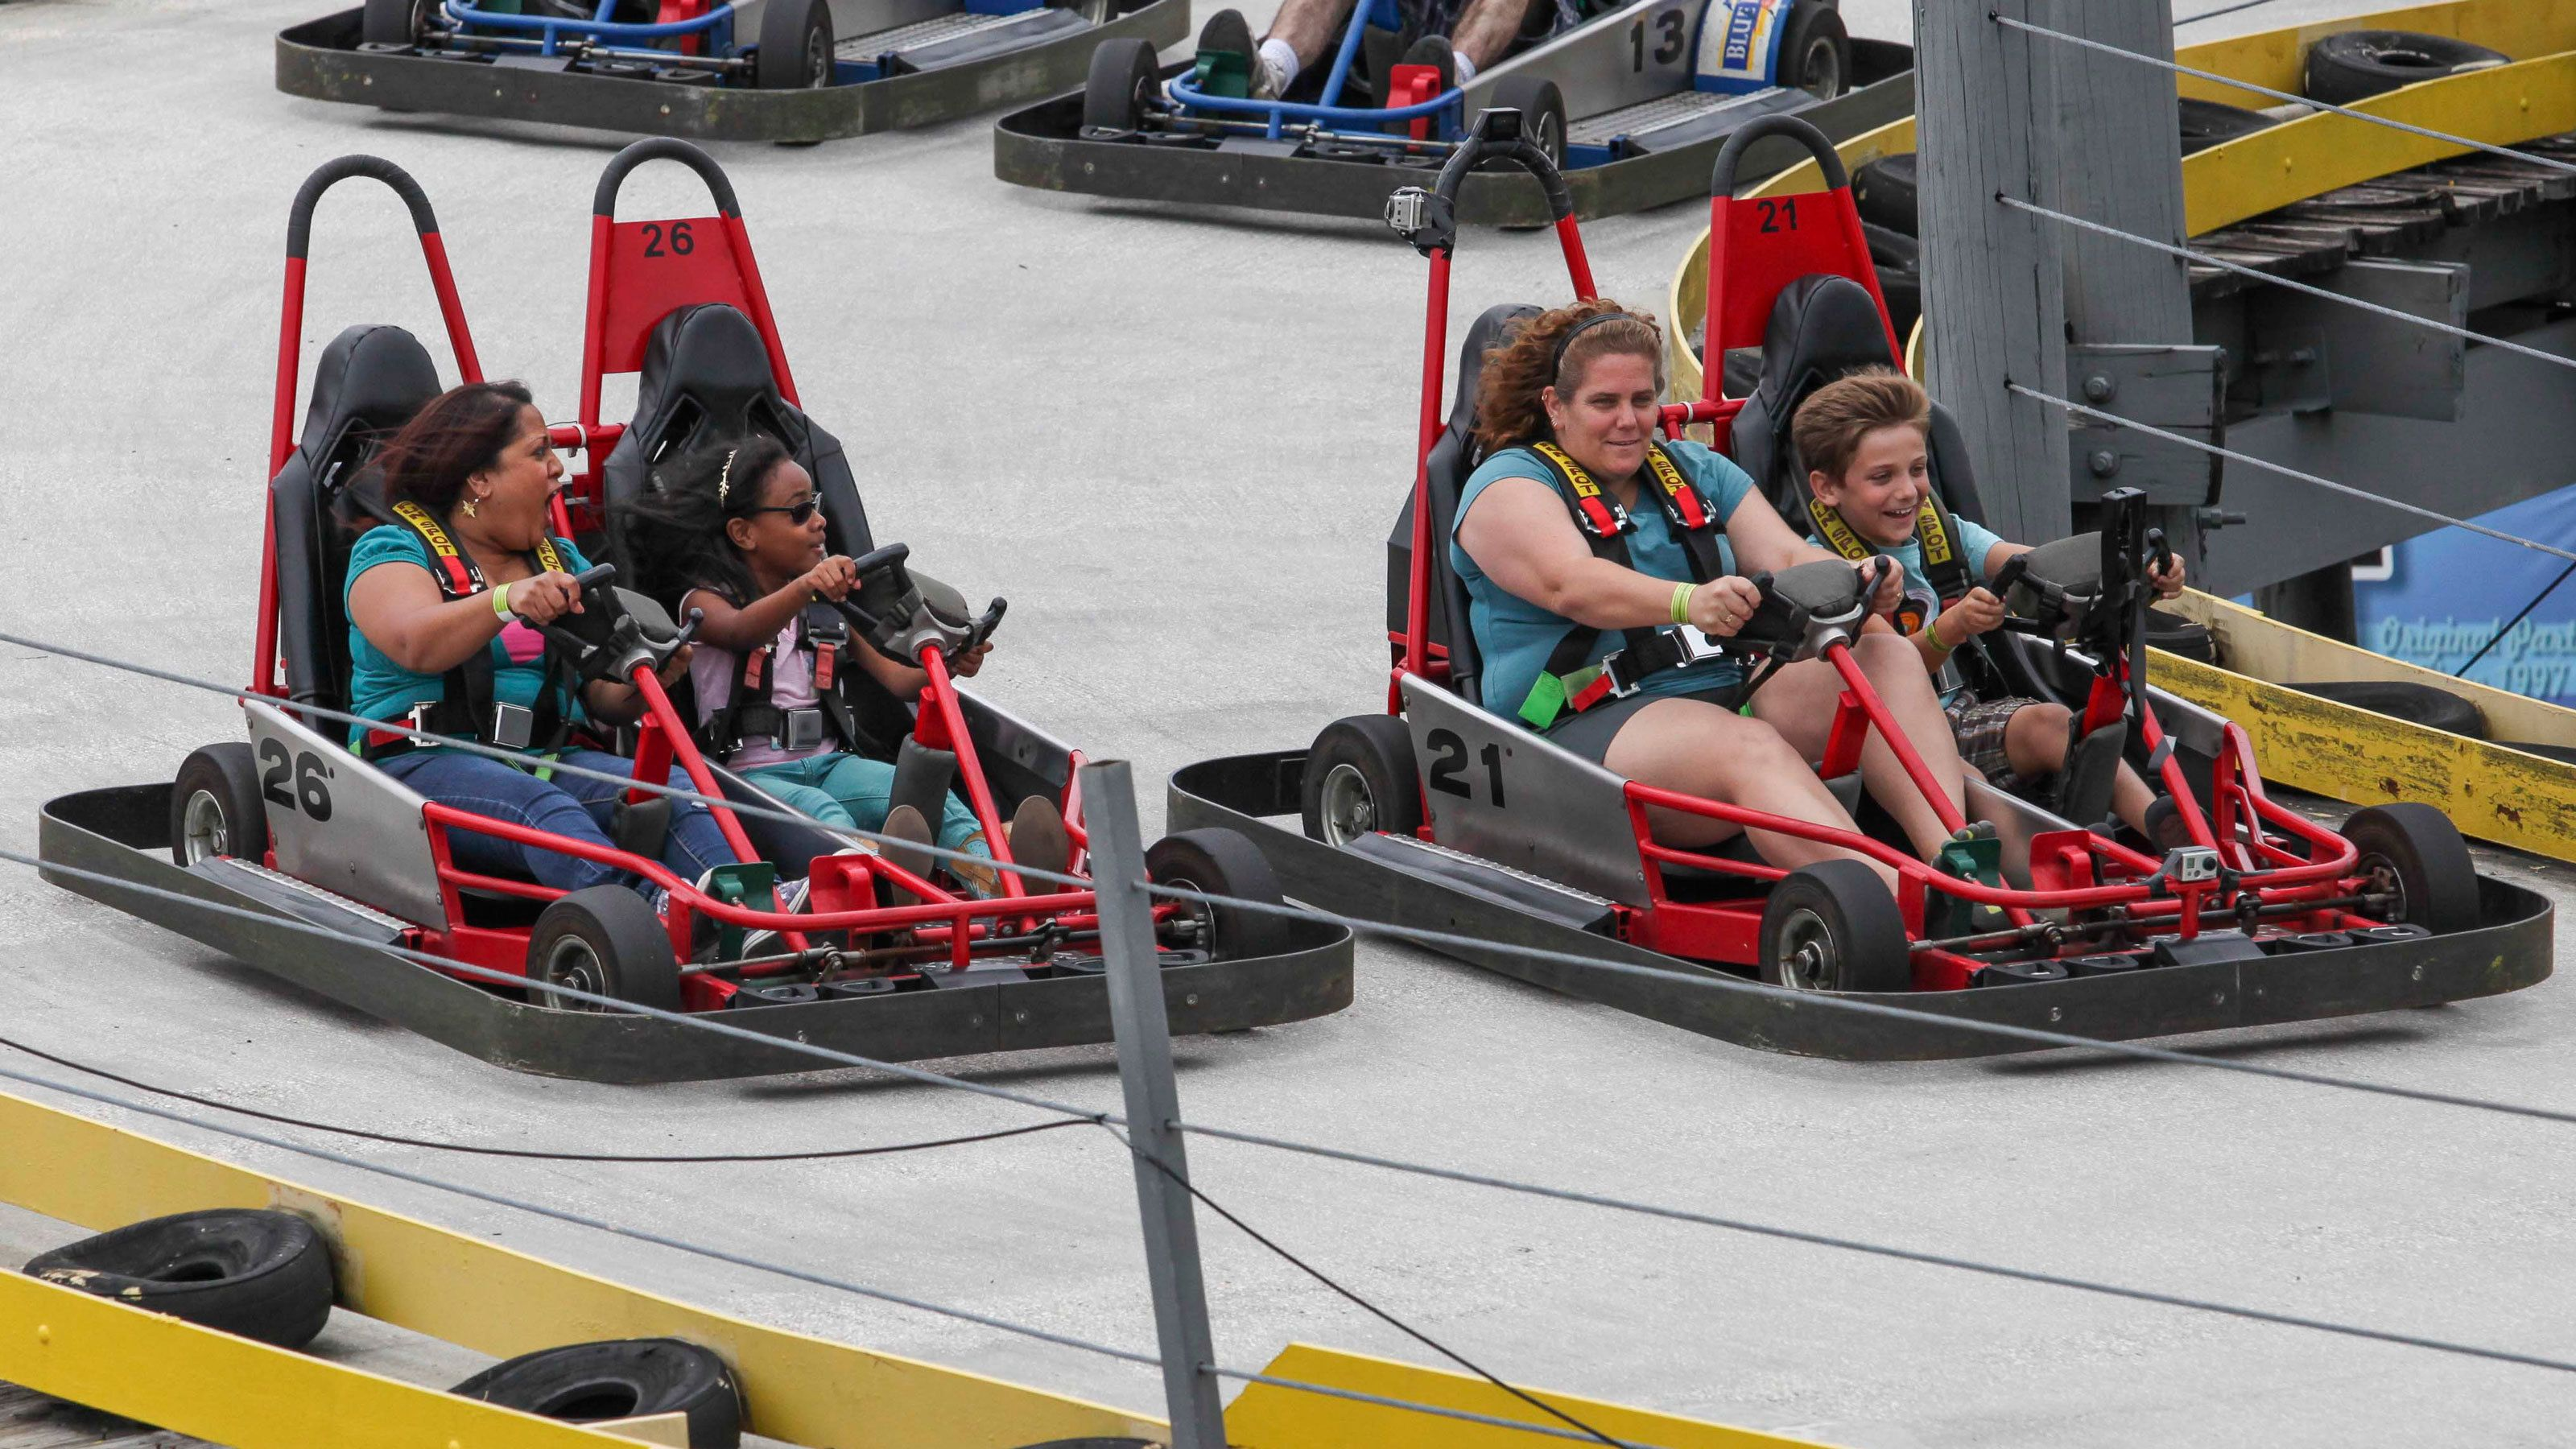 Go Karts with passengers at Fun Spot American in Orlando.